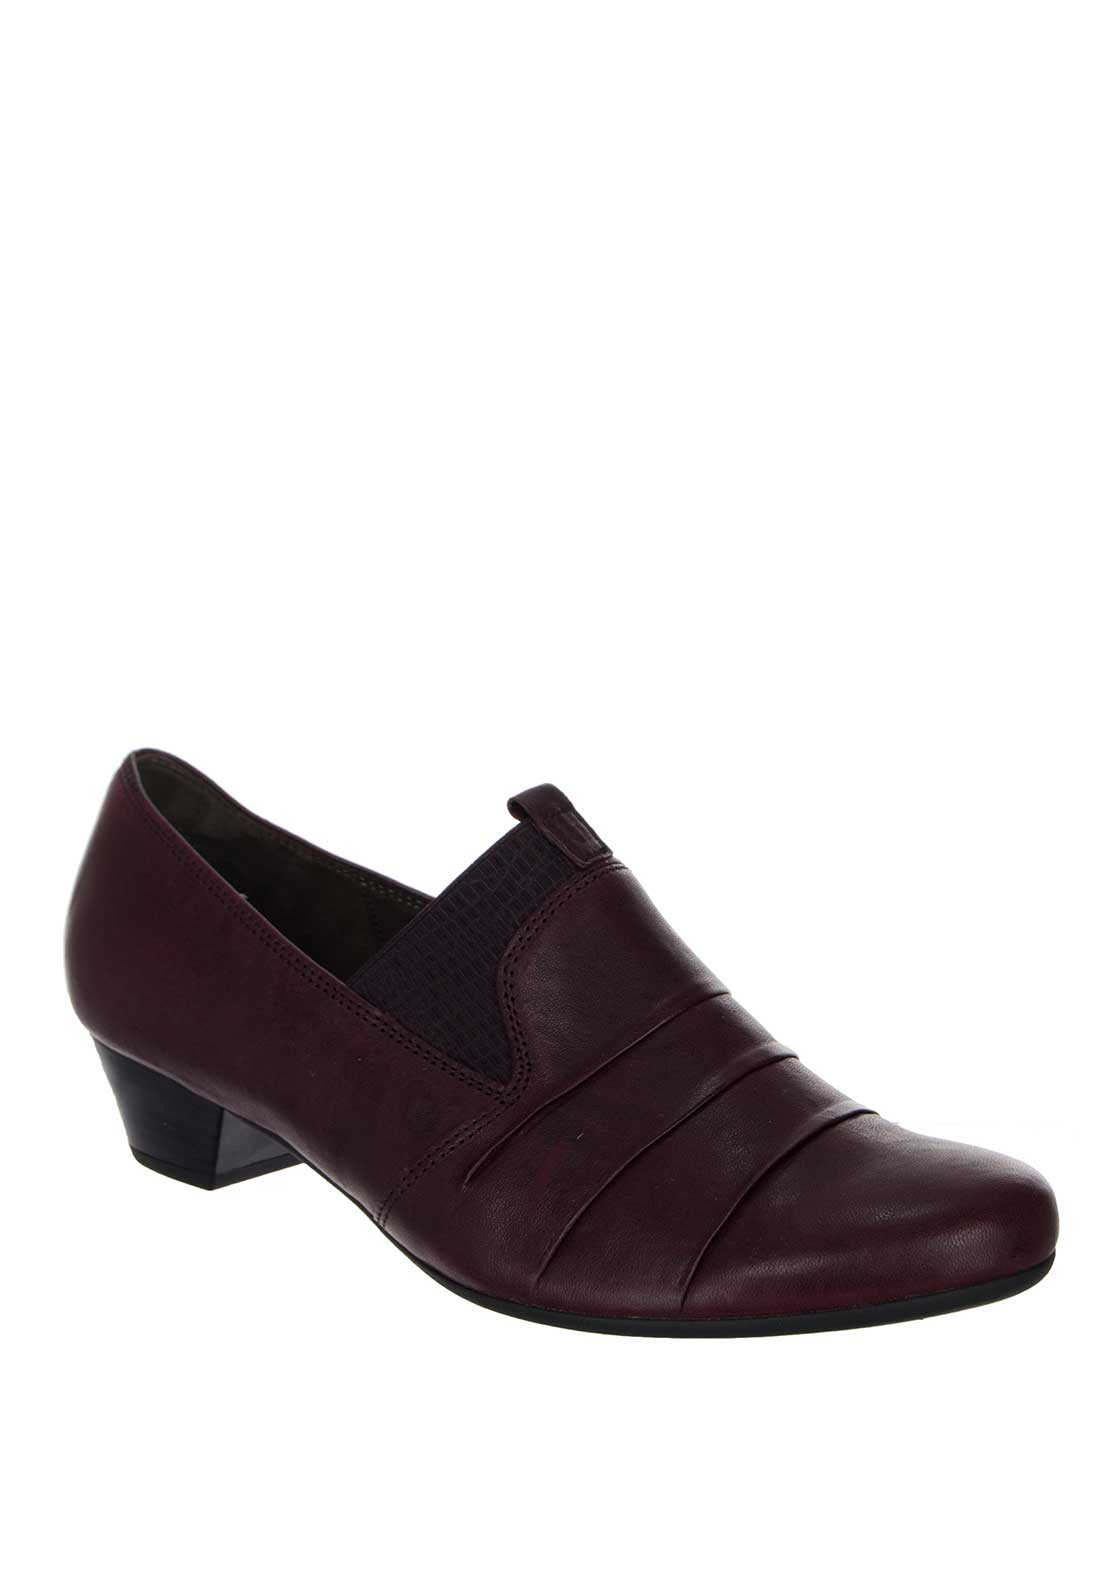 Gabor Women's Casual Shoe, Wine